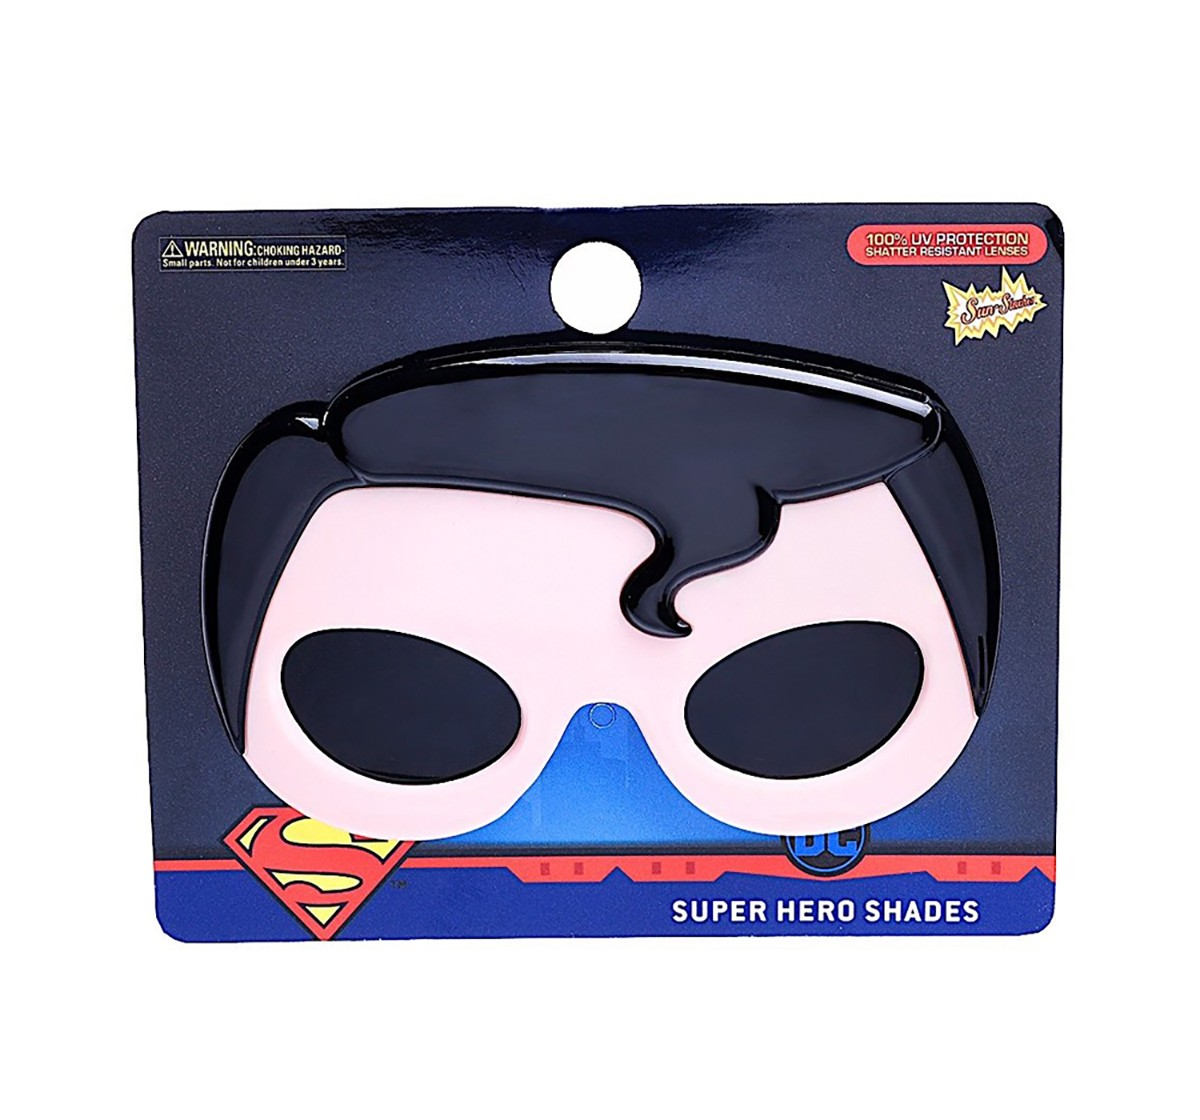 Dc Sunstaches Superman Sunglasses Shades Novelty Character Novelty for Kids age 12M+